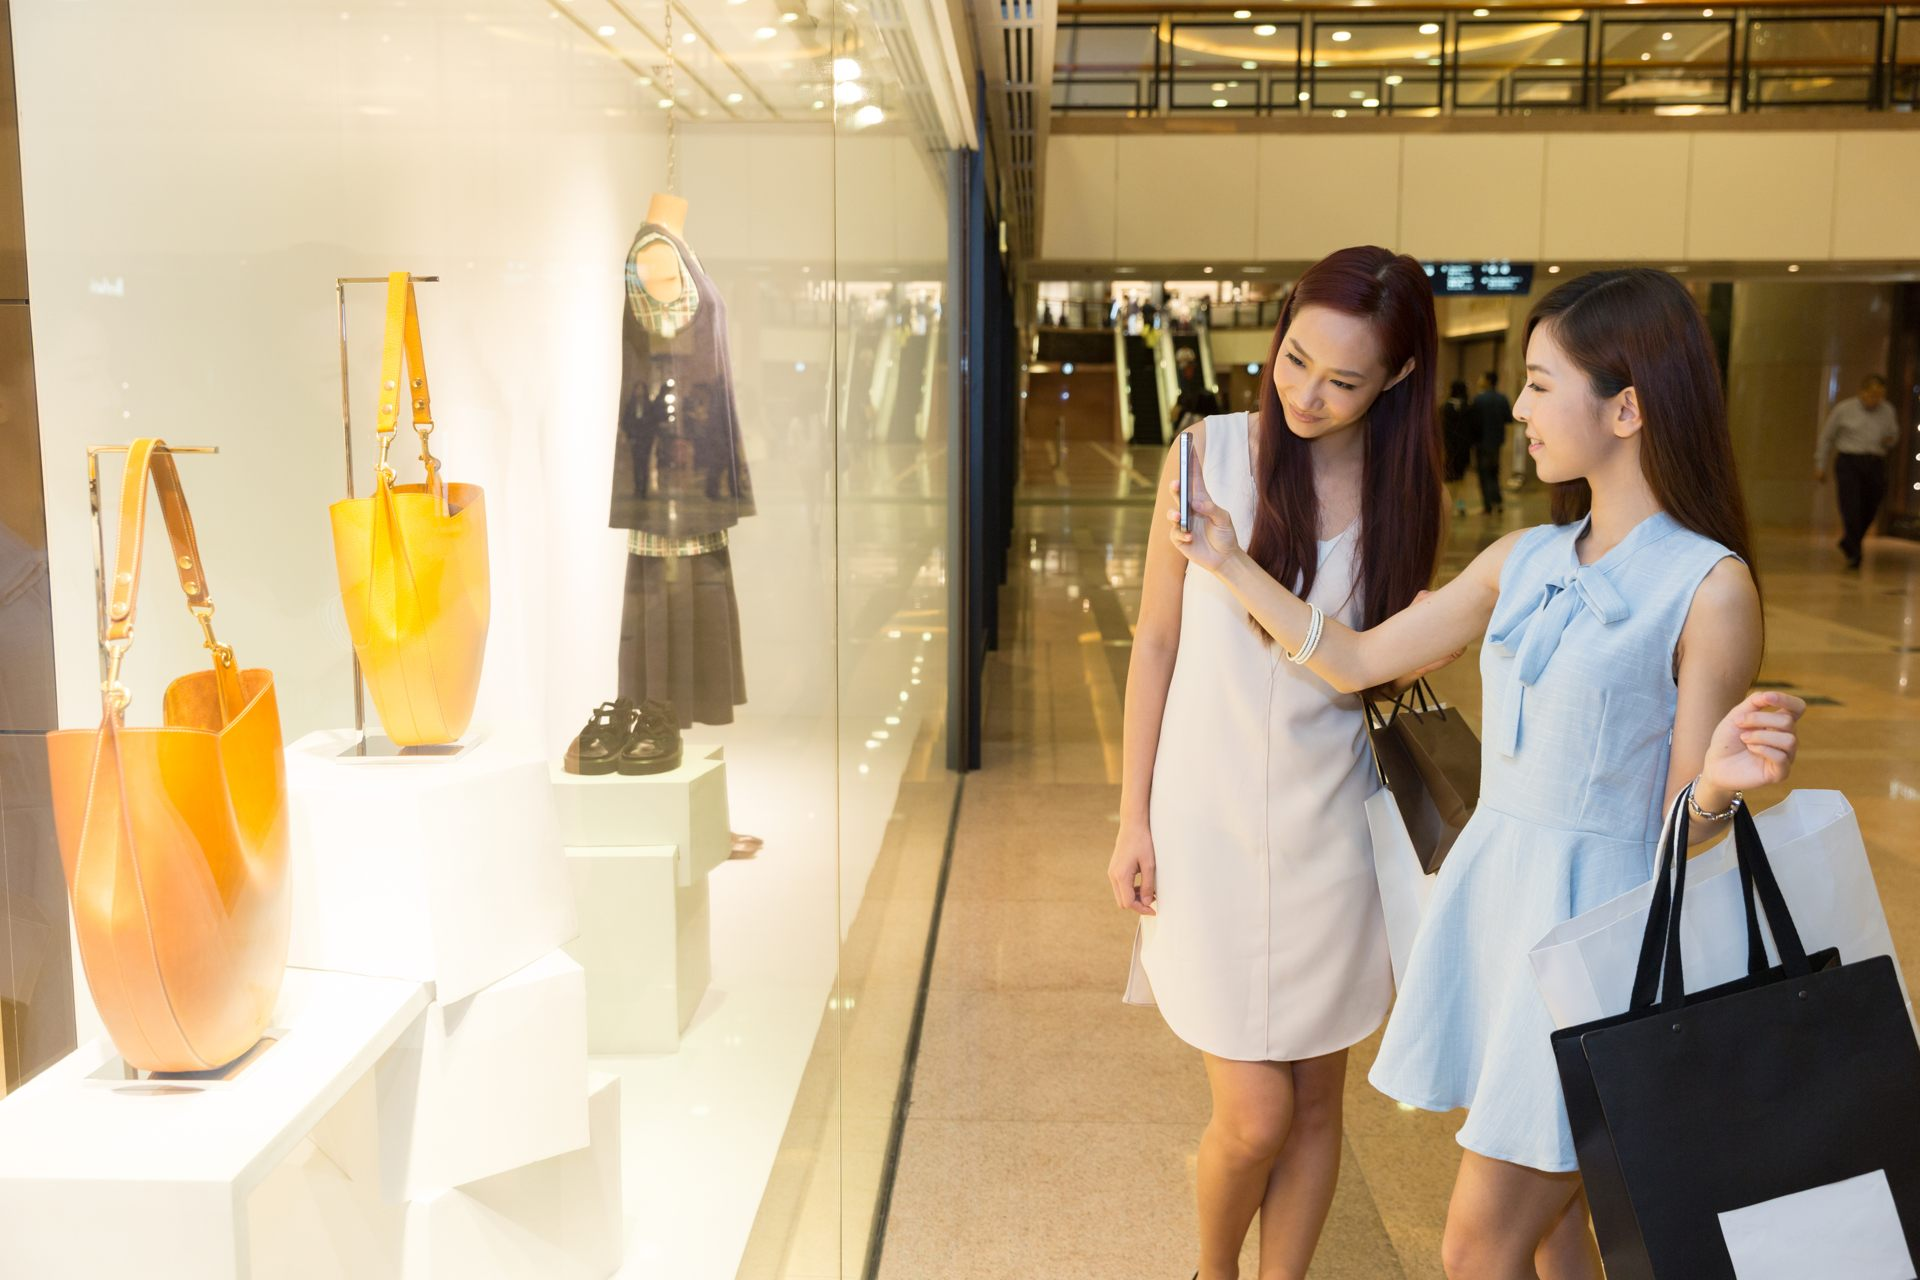 How can brands win over Chinese millennials?